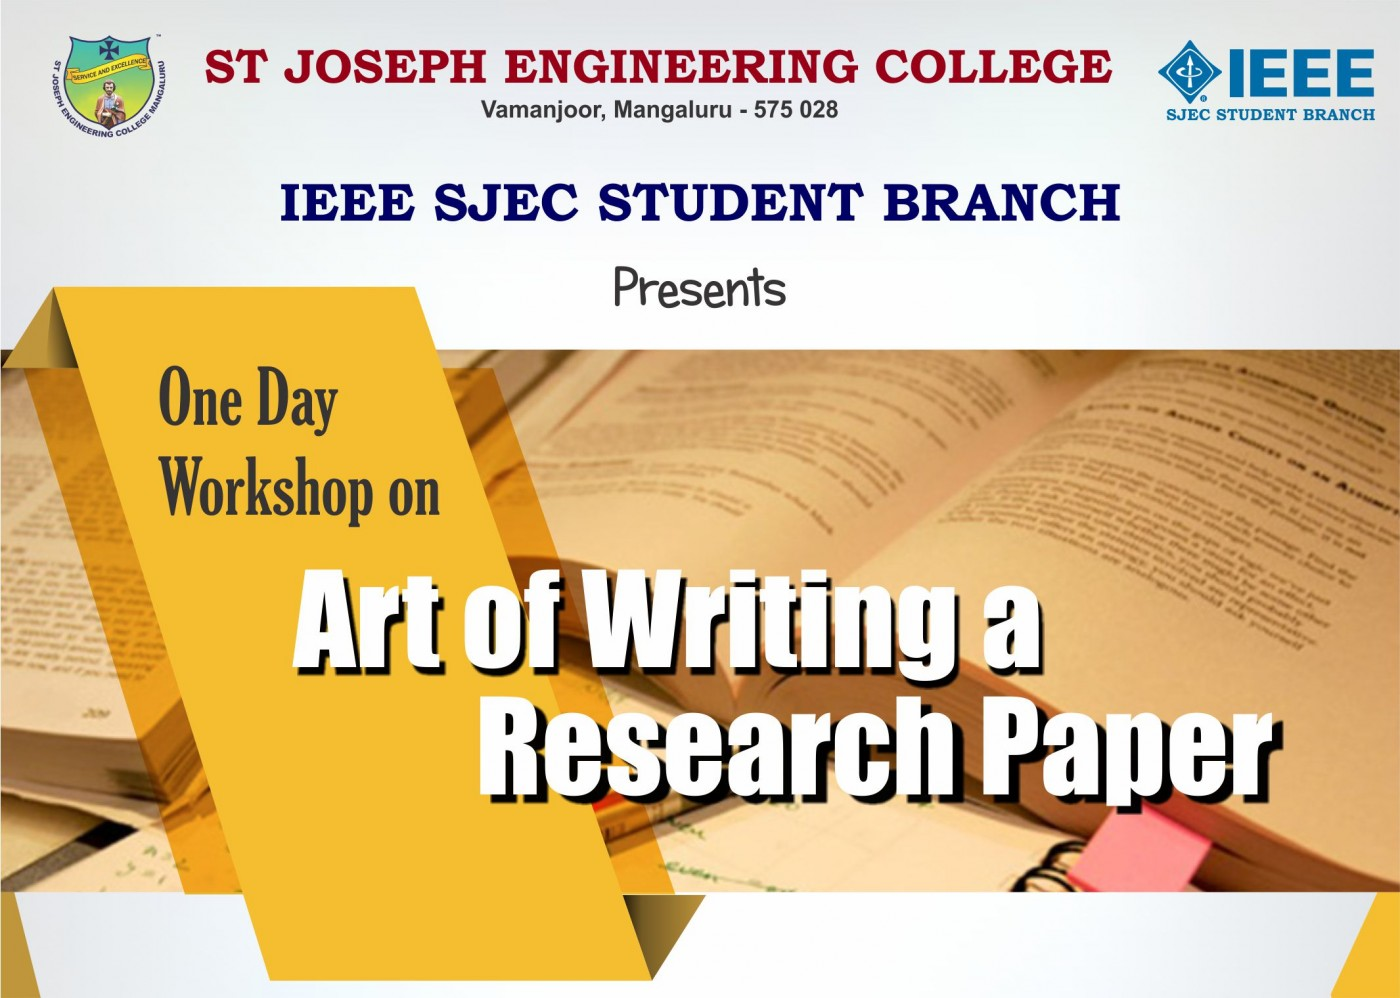 011 Research Paper Writing Workshop Unforgettable Service Online Software Free Download 1400